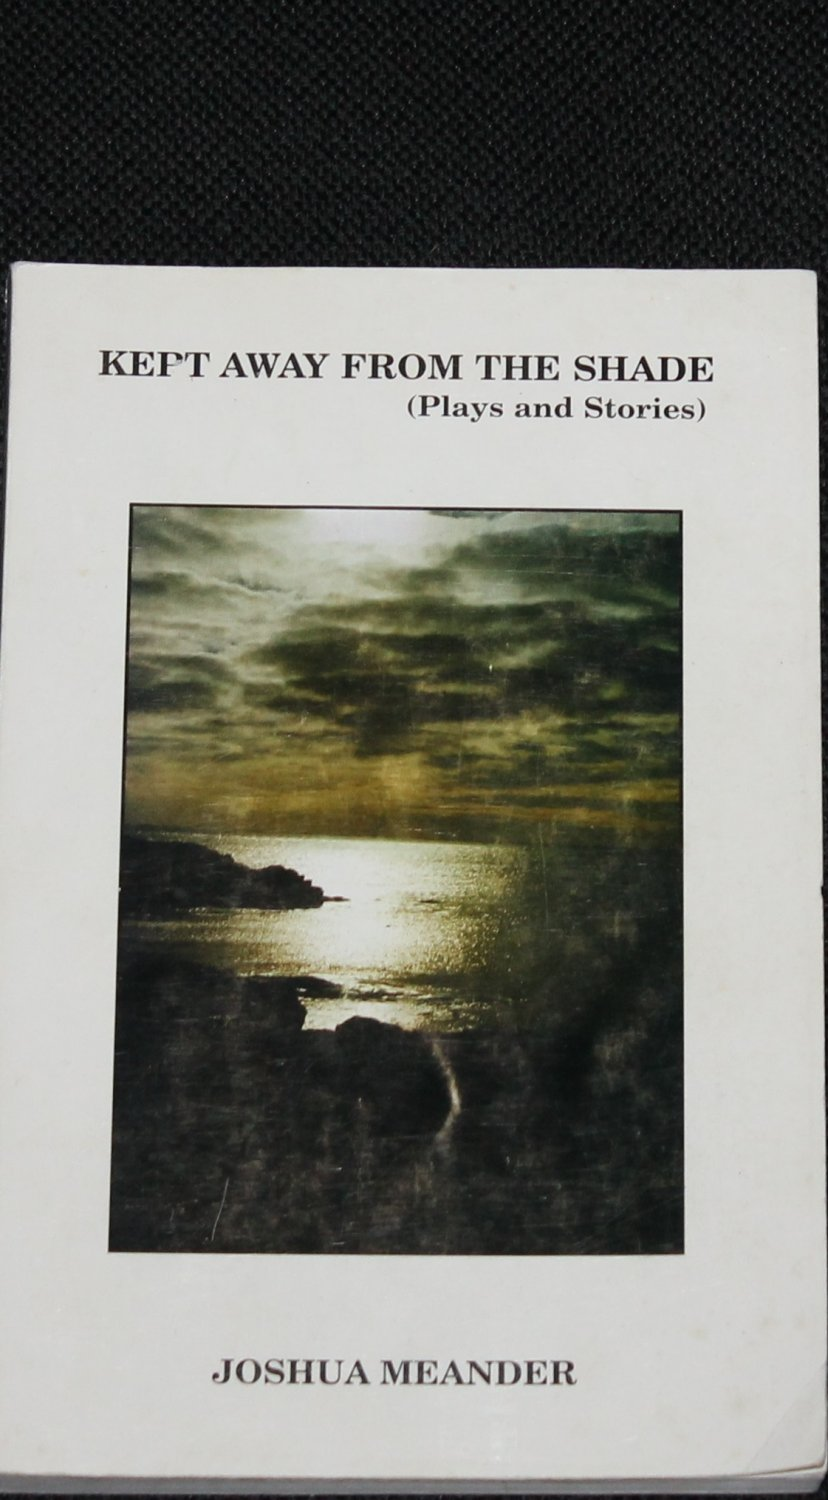 Kept Away From the Shade - Plays and Stories book by Joshua Meander